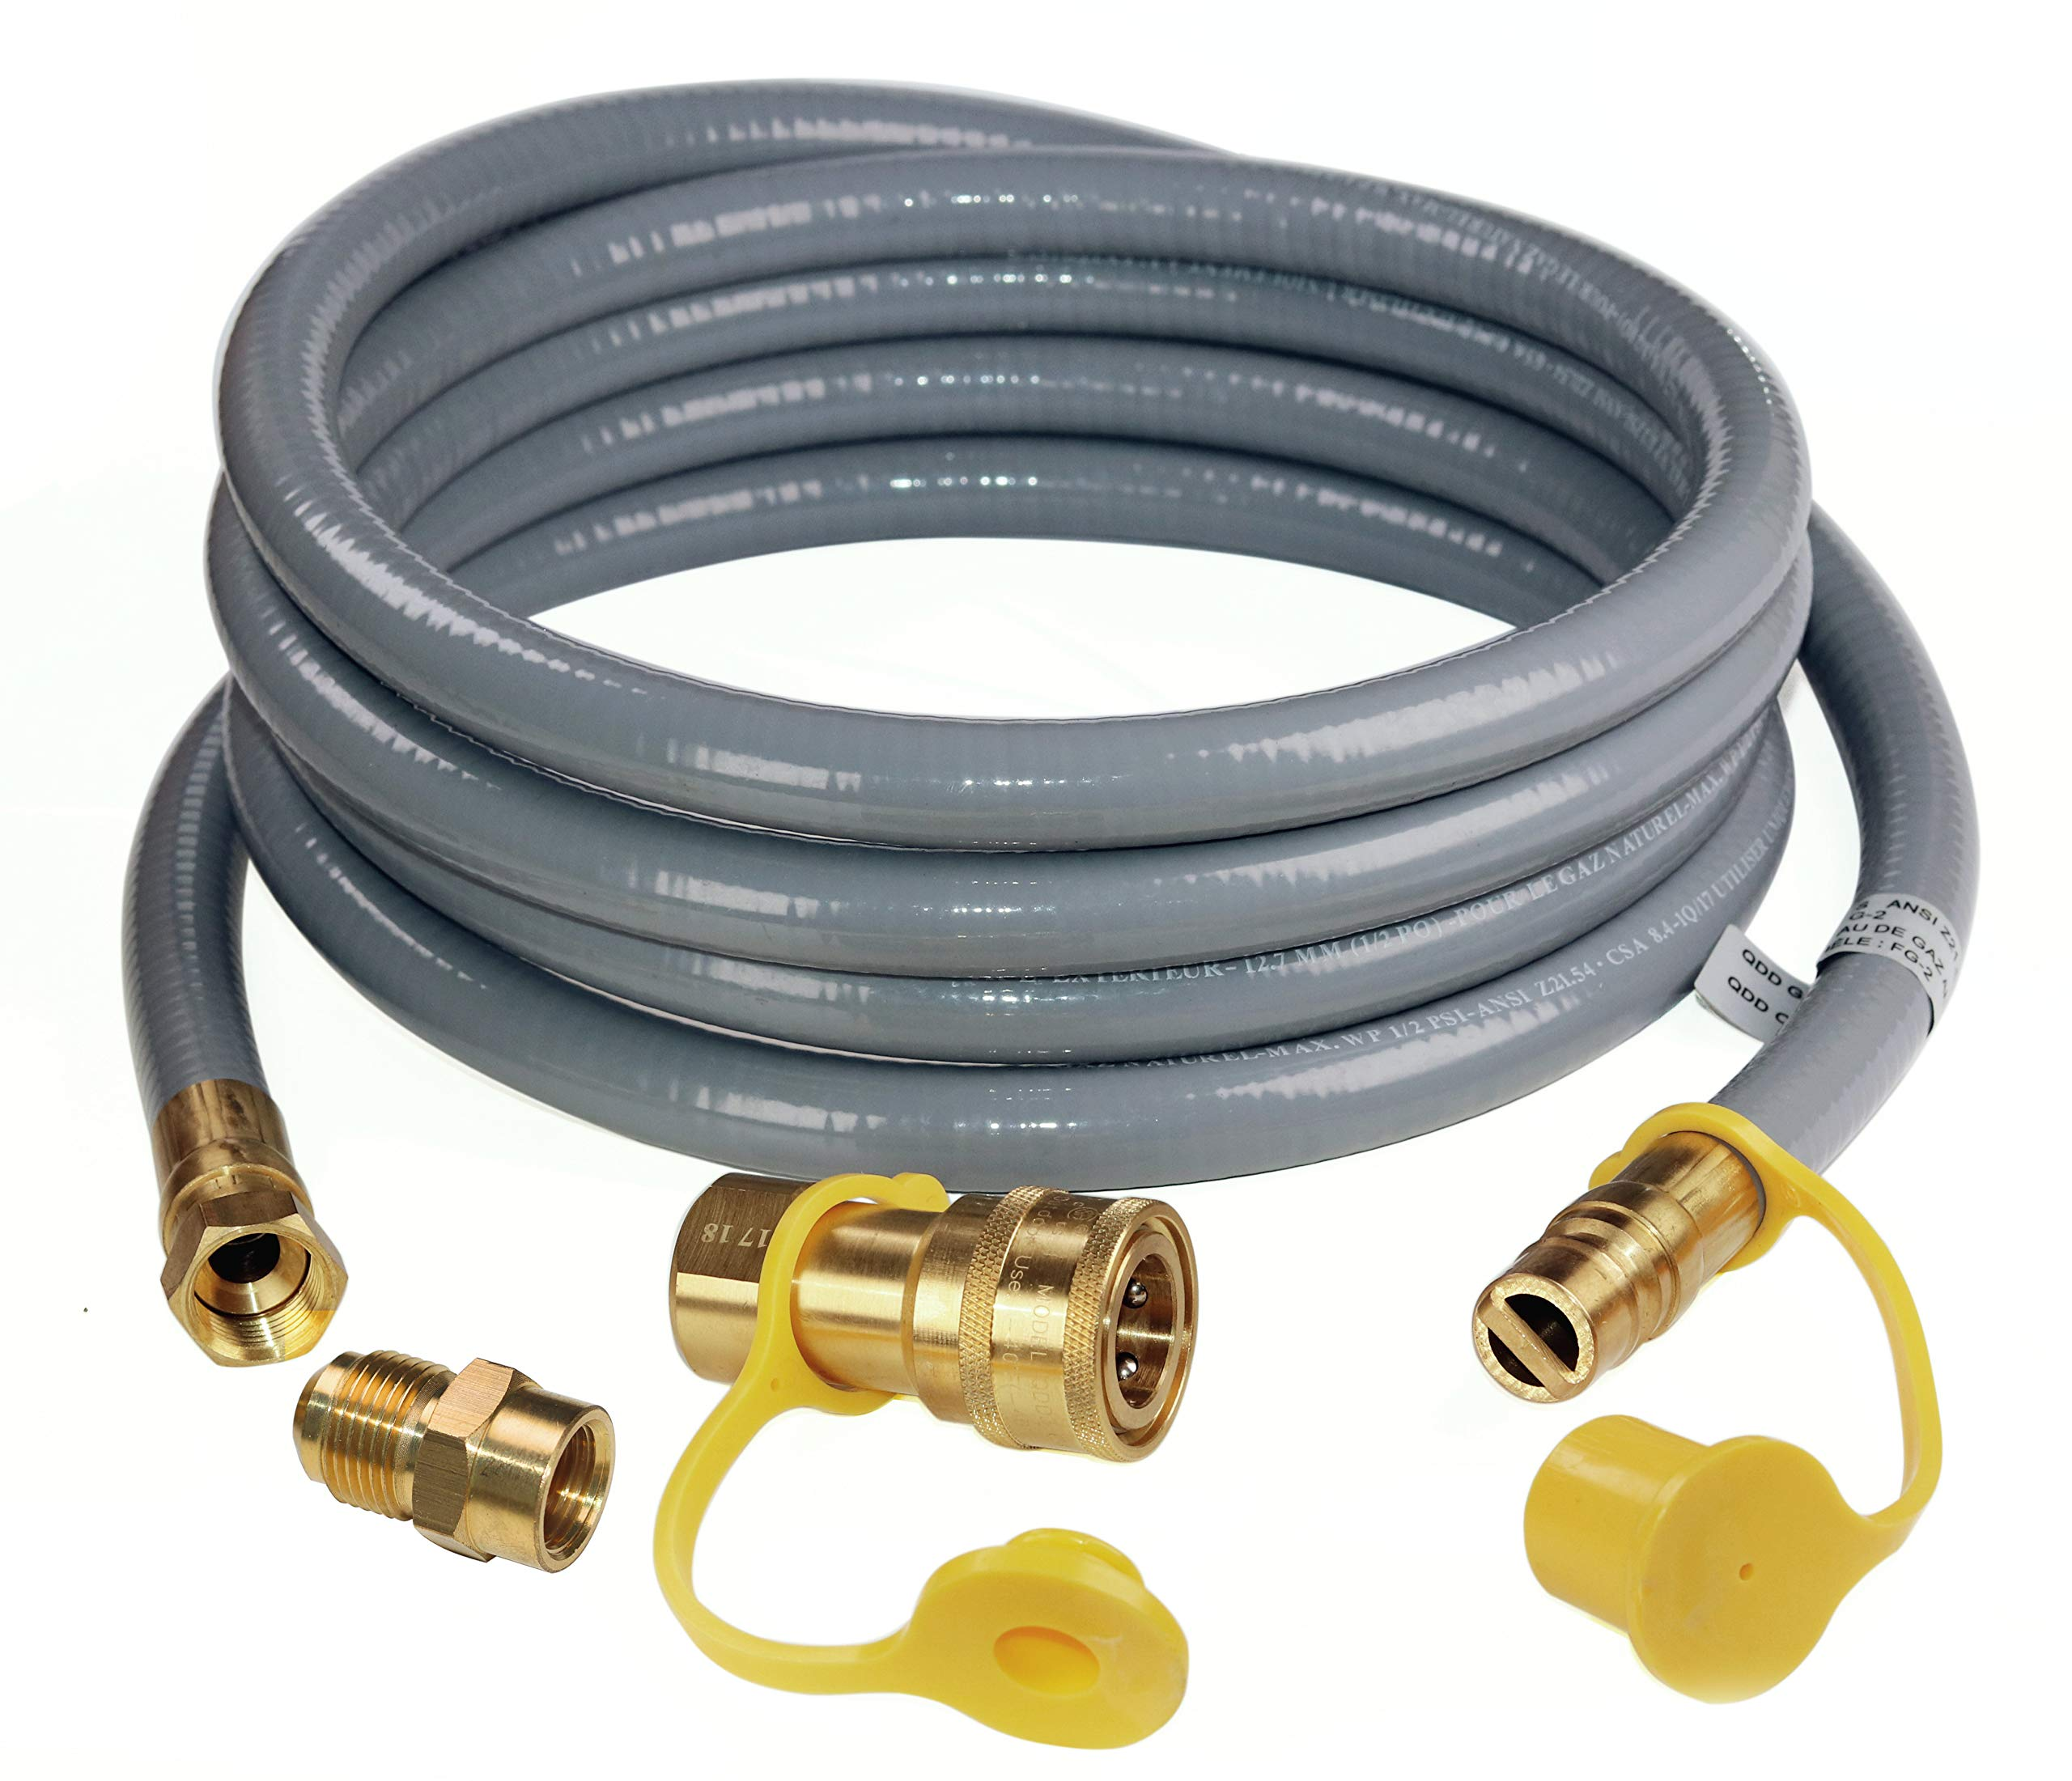 DOZYANT 12 Feet 1/2 inch ID Natural Gas Grill Hose with Quick Connect Fittings Assembly for Low Pressure Appliance -3/8 Female to 1/2 Male Adapter for Outdoor NG/Propane Appliance - CSA Certified by DOZYANT